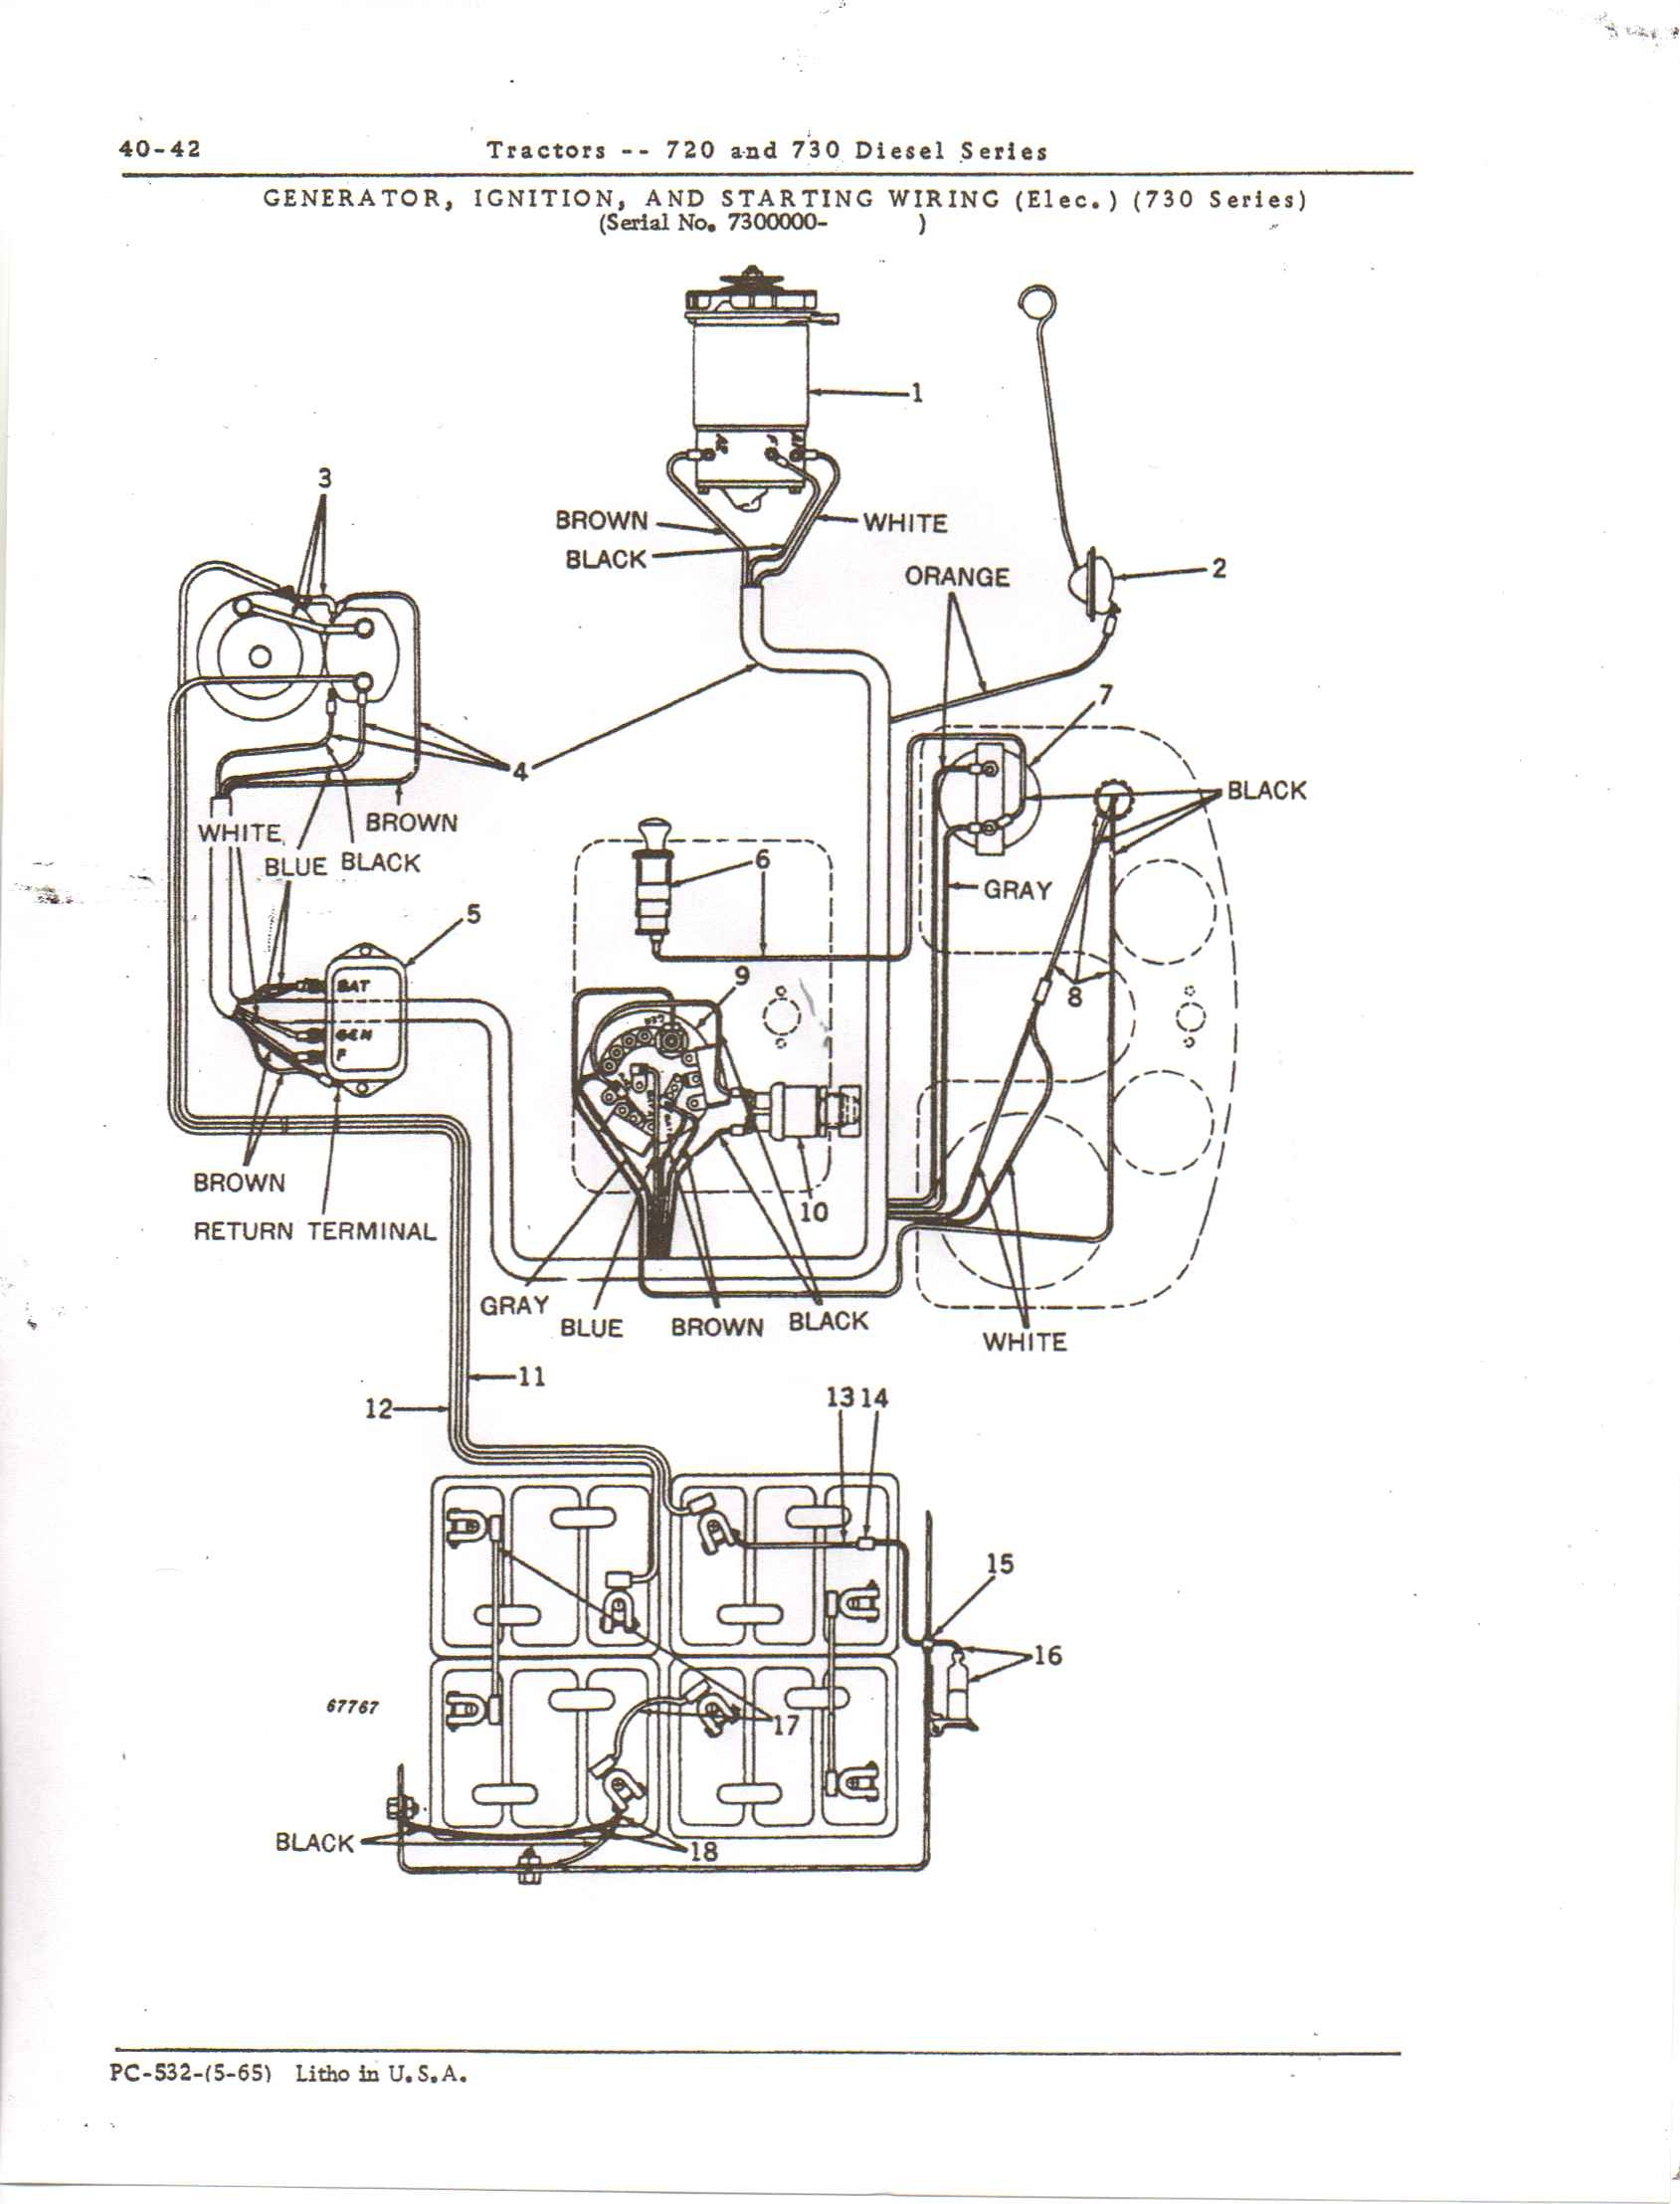 John Deere Wiring Diagram | Wiring Diagram Database on john deere d130 wiring-diagram, john deere 316 flywheel, john deere 316 lights, john deere 316 frame, john deere 318 wiring-diagram, john deere 212 wiring-diagram, john deere 318 onan wiring, john deere 345 kawasaki wiring diagrams, john deere 316 coil, john deere 316 ignition switch, john deere 455 wiring-diagram, john deere 1020 wiring-diagram, john deere 316 electrical, john deere lx255 wiring-diagram, john deere 145 wiring-diagram, john deere 322 wiring-diagram, john deere 155c wiring-diagram, craftsman riding tractor wiring diagram, john deere 4010 wiring-diagram, john deere z225 wiring-diagram,